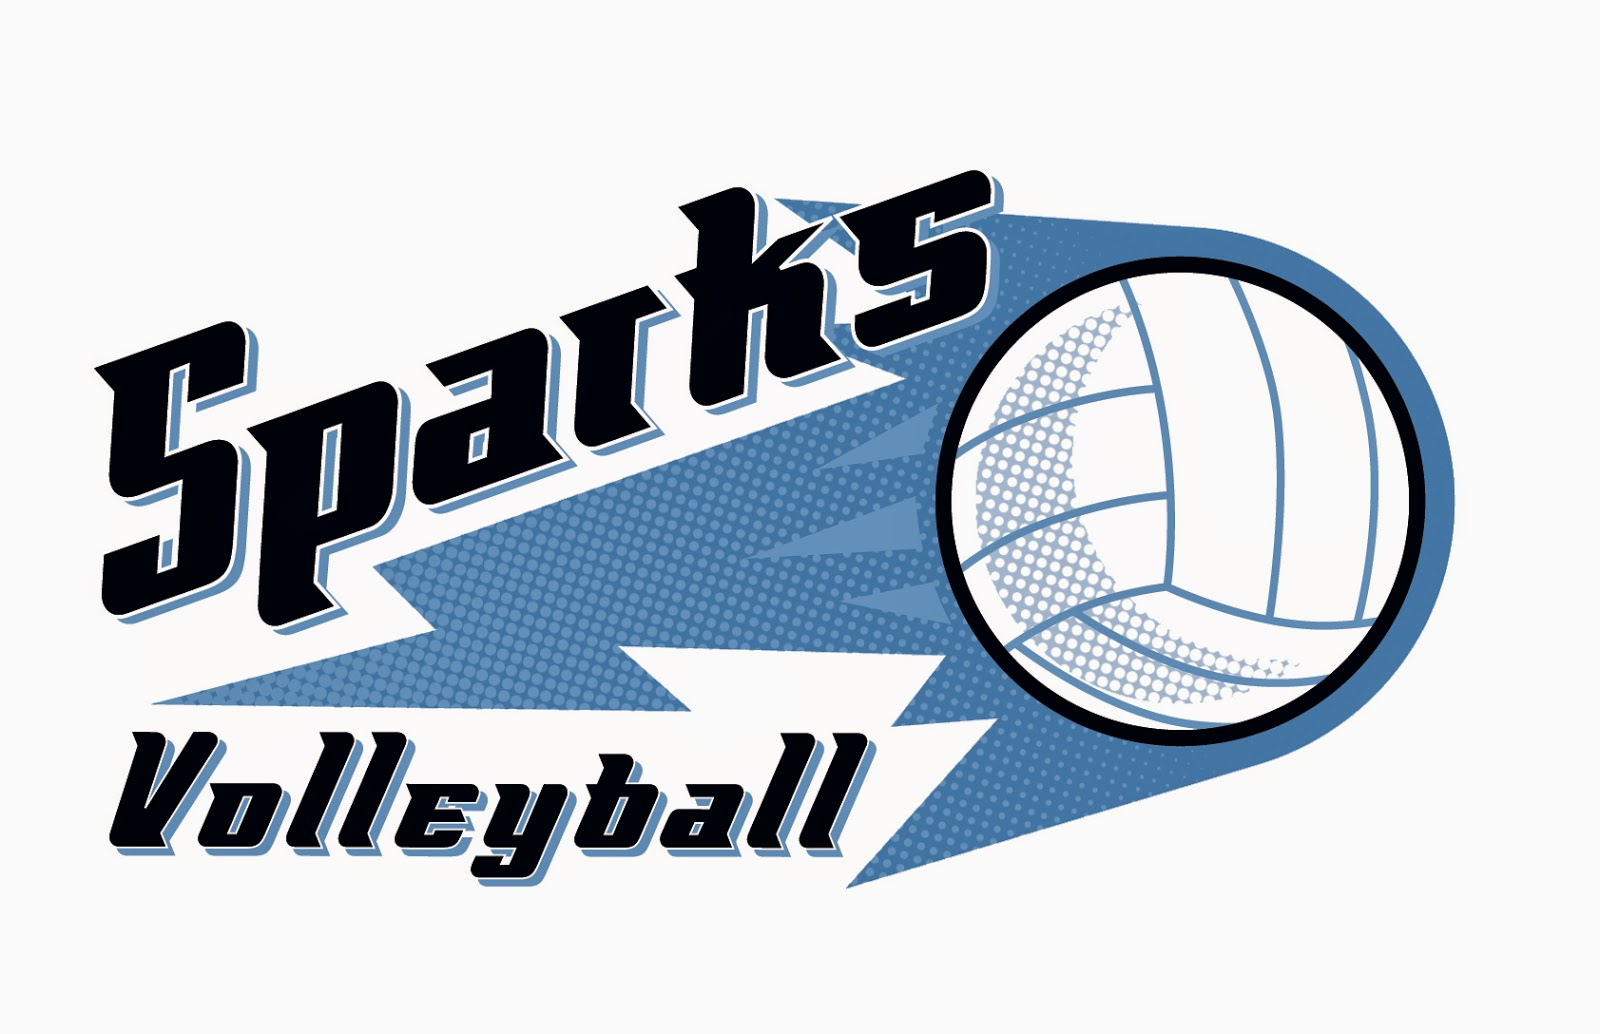 1600x1034 Scott Derby Illustration Sparks Volleyball Club Logo Design